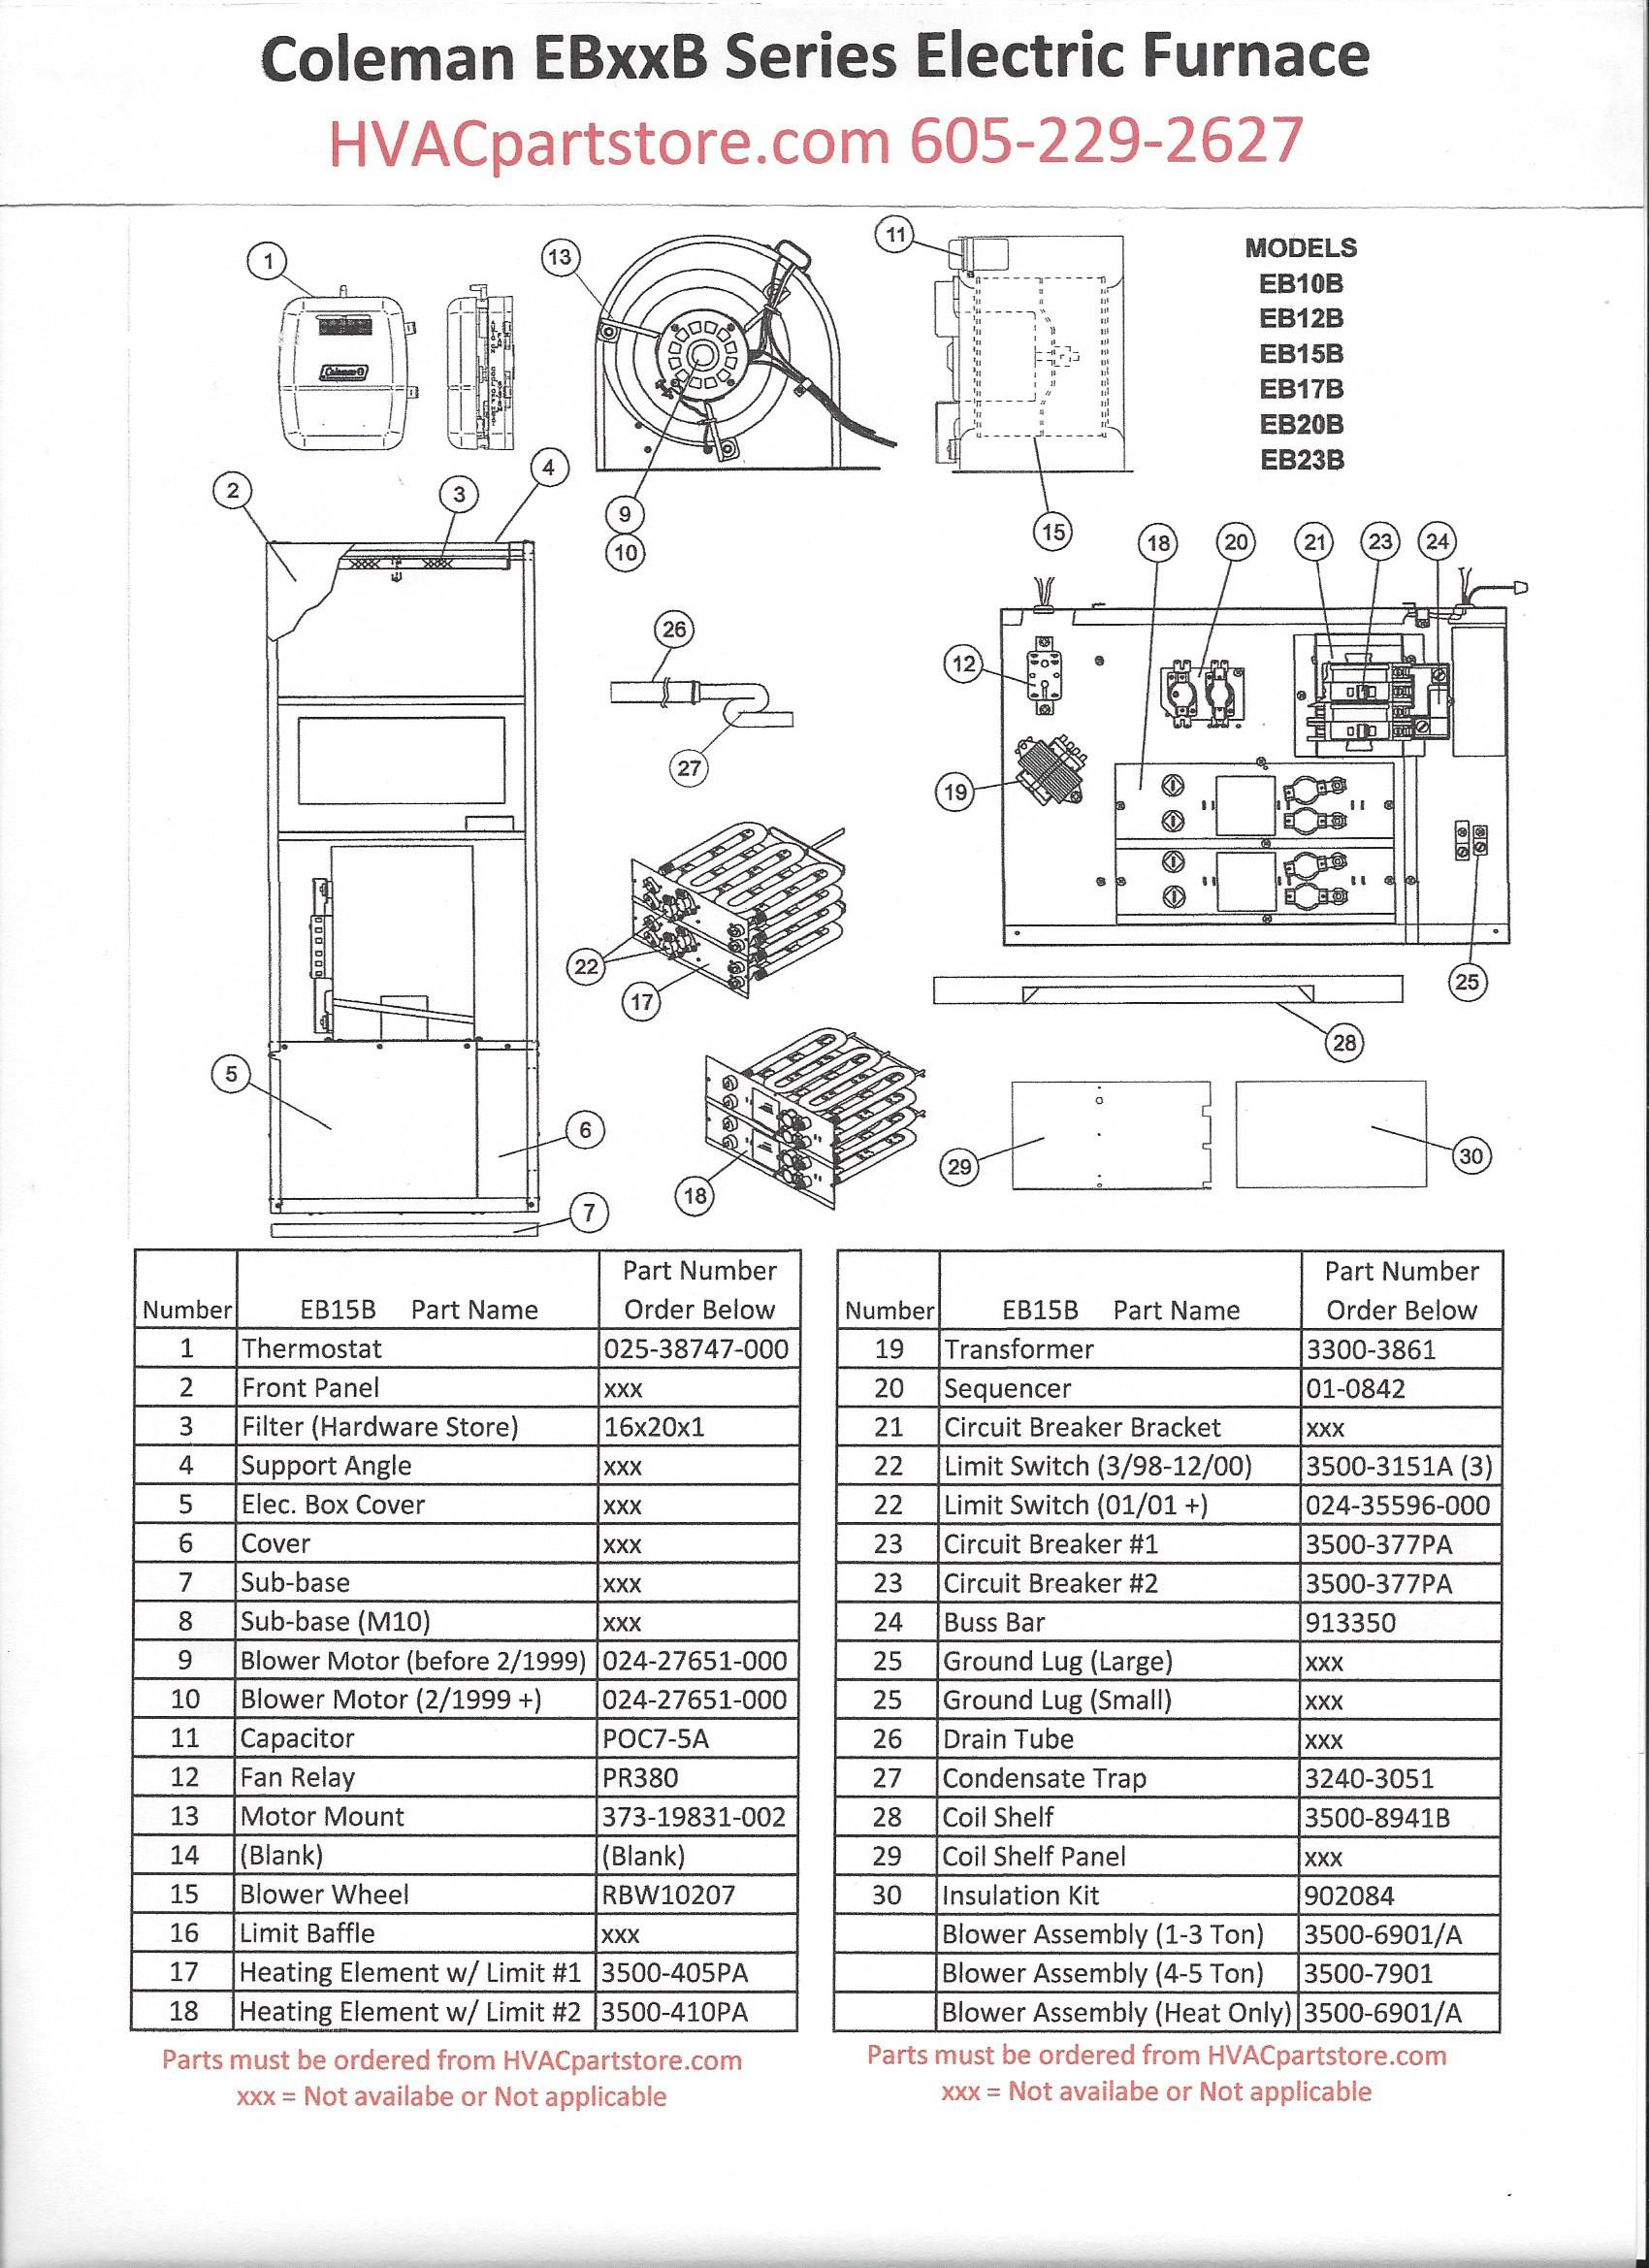 Atwood Water Heater Dsi Wiring Diagram - Atwood Water Heater Wiring Diagram